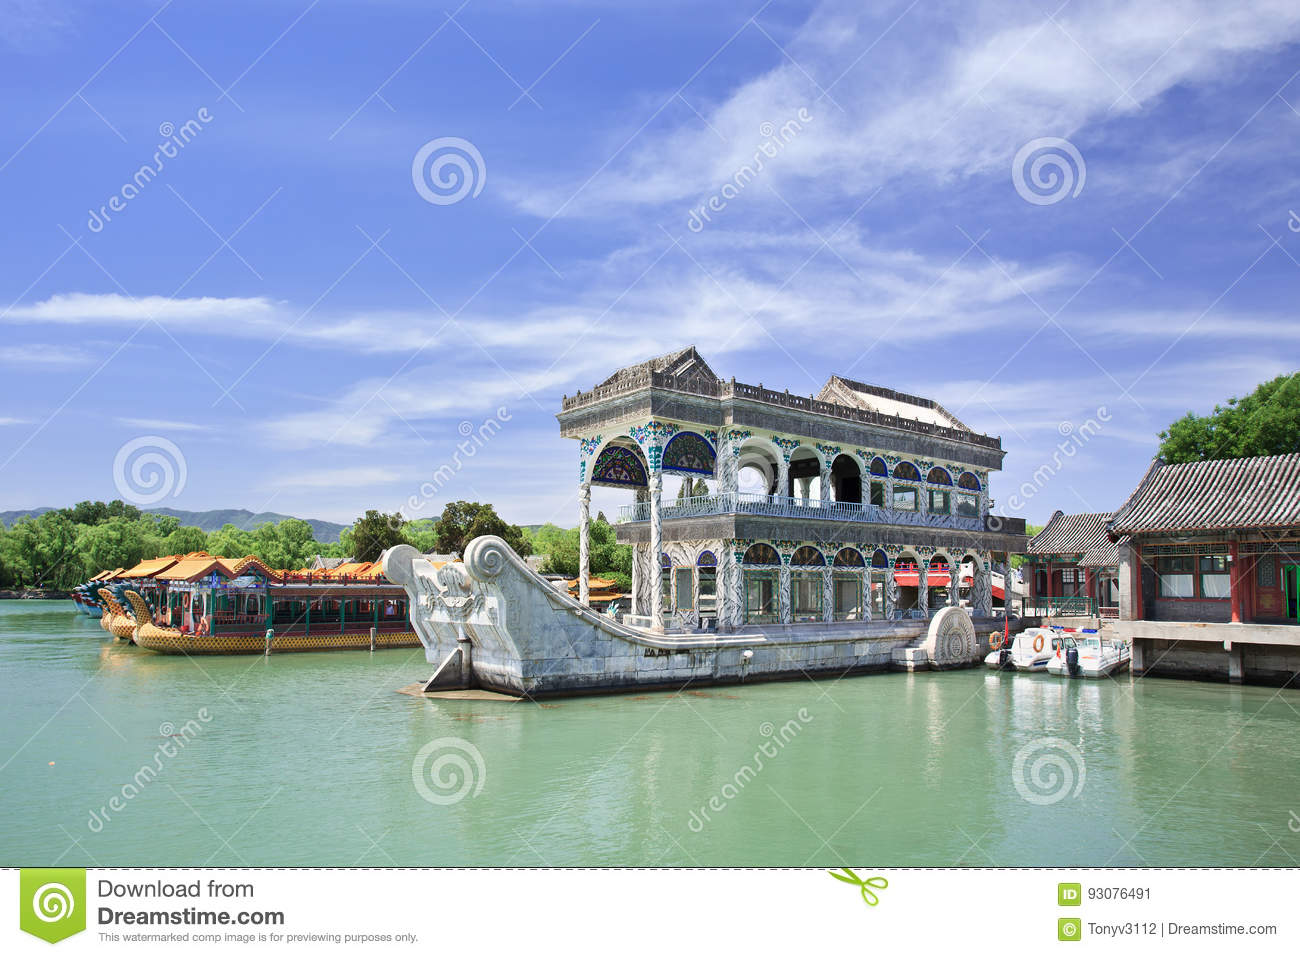 Steinboot am Kunming See, Sommer-Palast, Peking, China